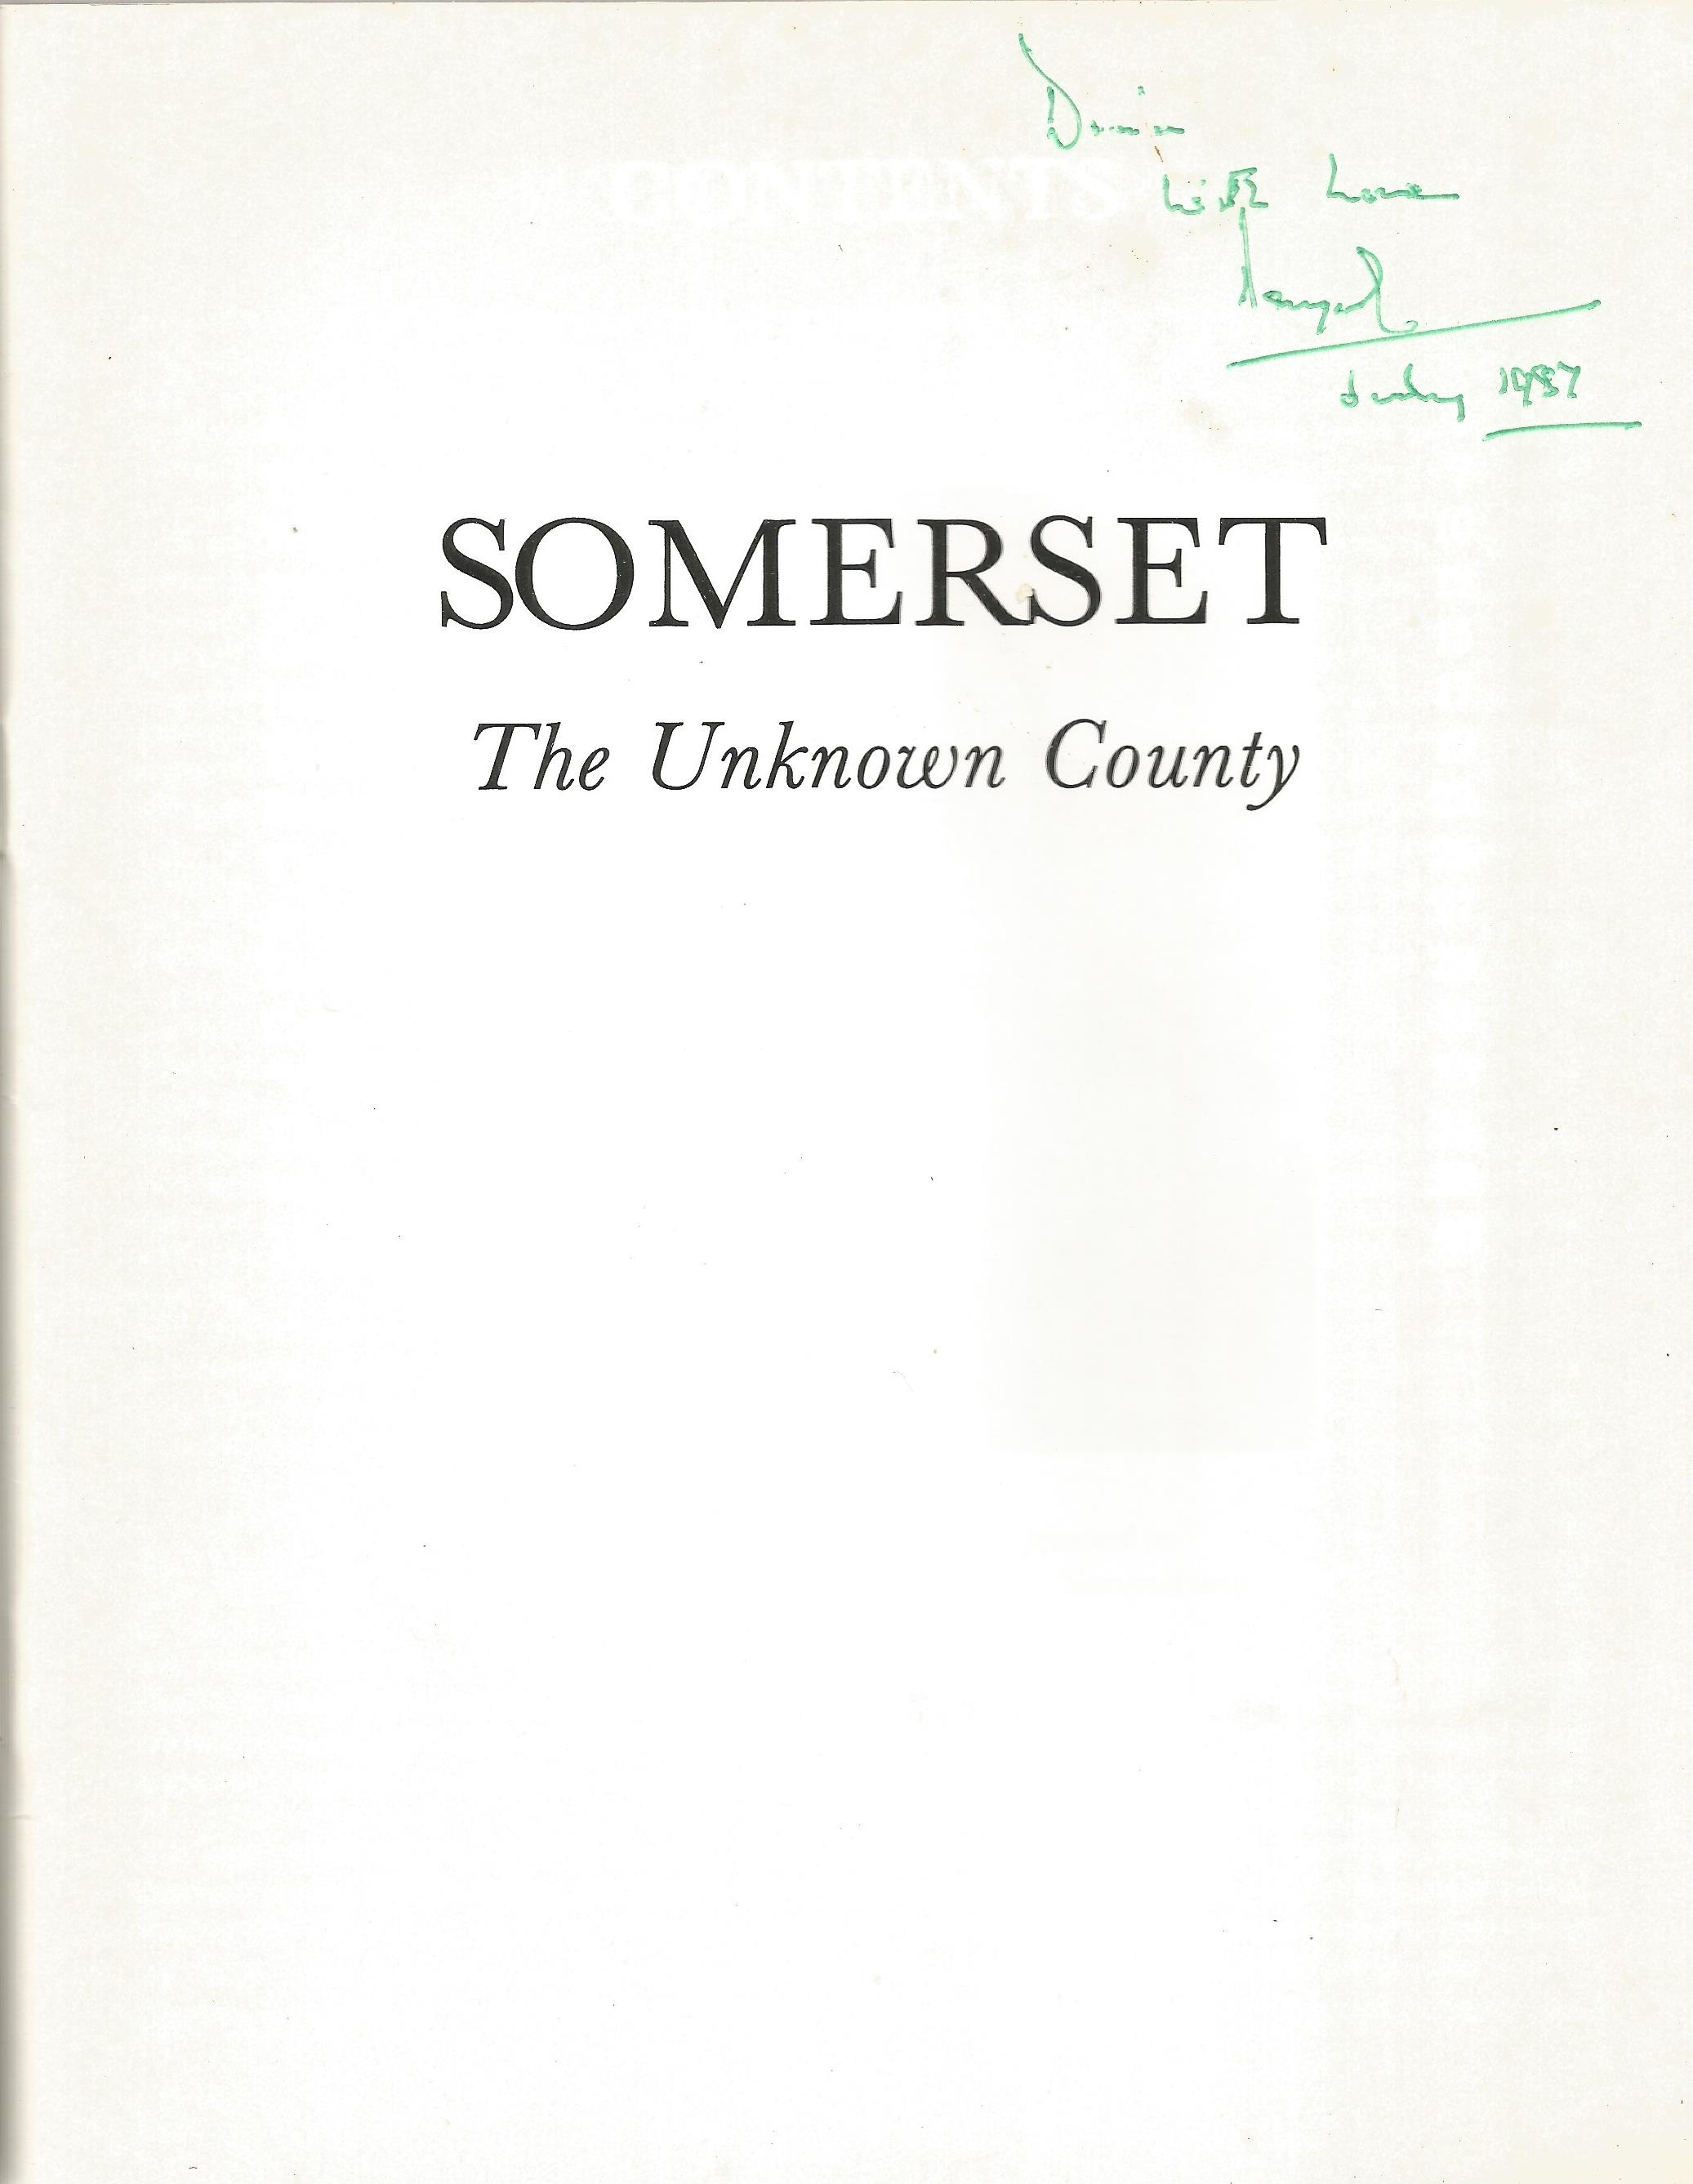 Dougal Duncan Paperback Book Somerset the unknown County signed by the Author on the First Page - Image 2 of 3